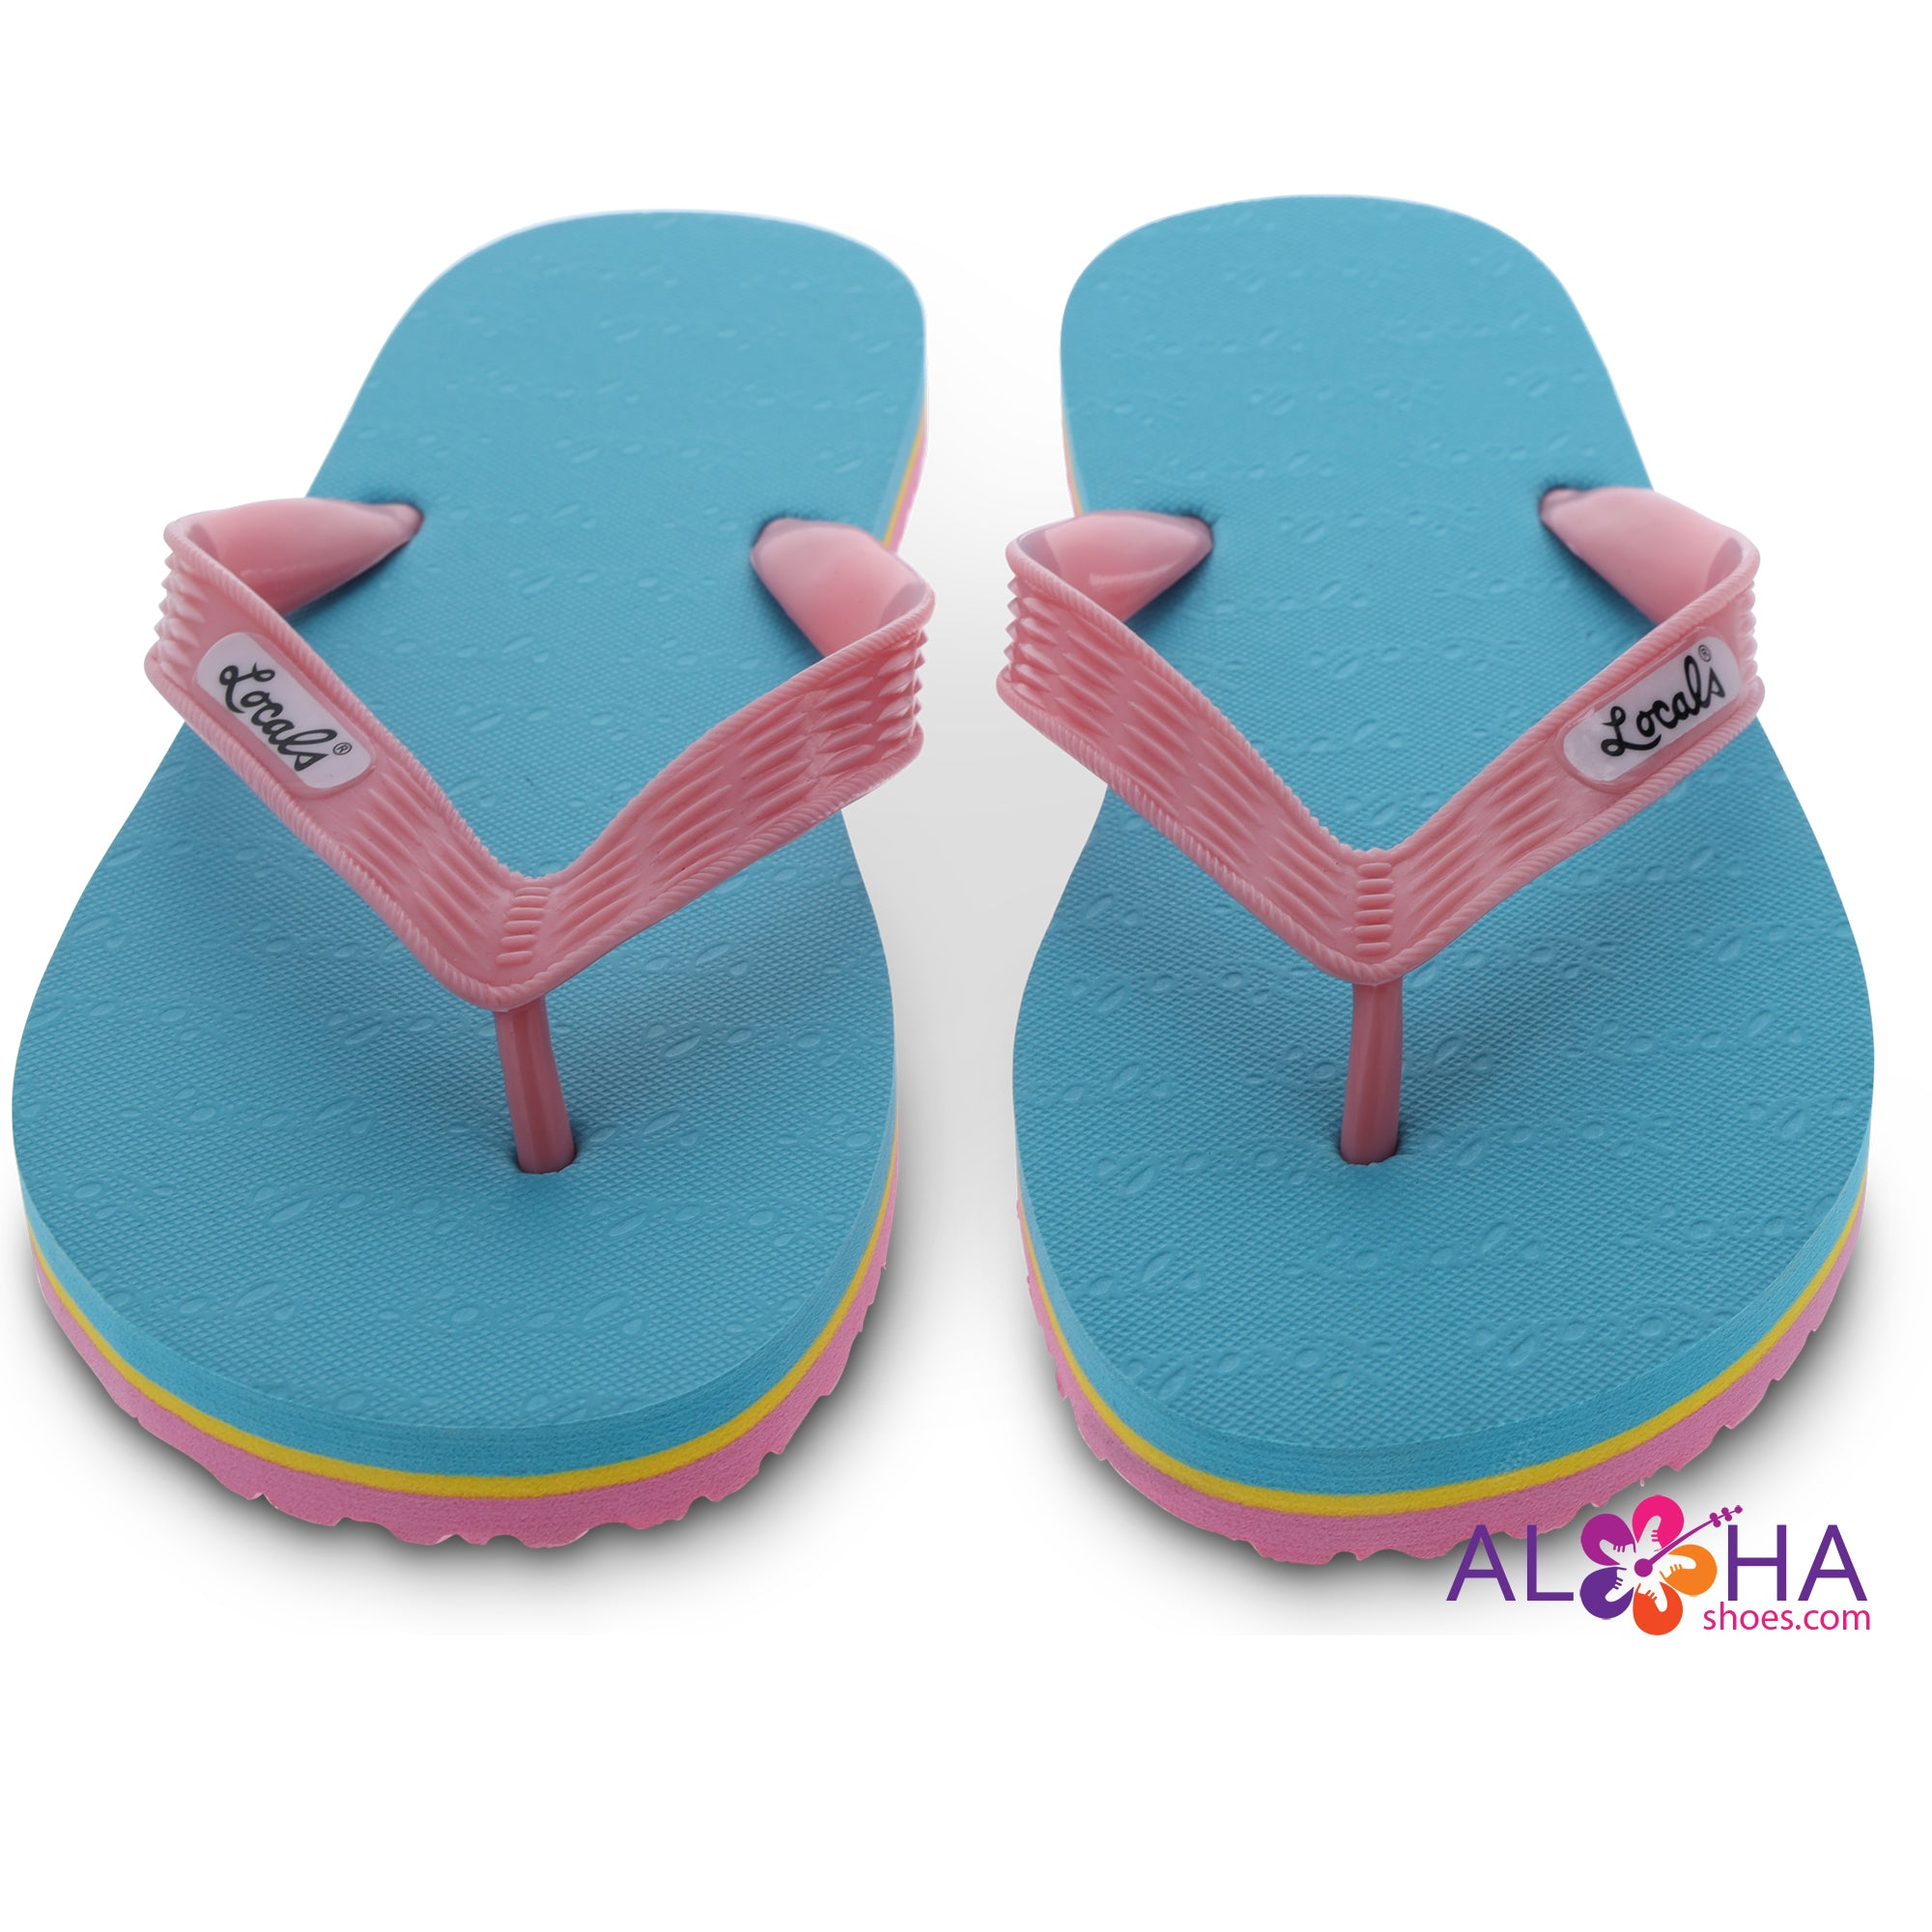 Locals Hawaii Women's Neon Slippers - AlohaShoes.com